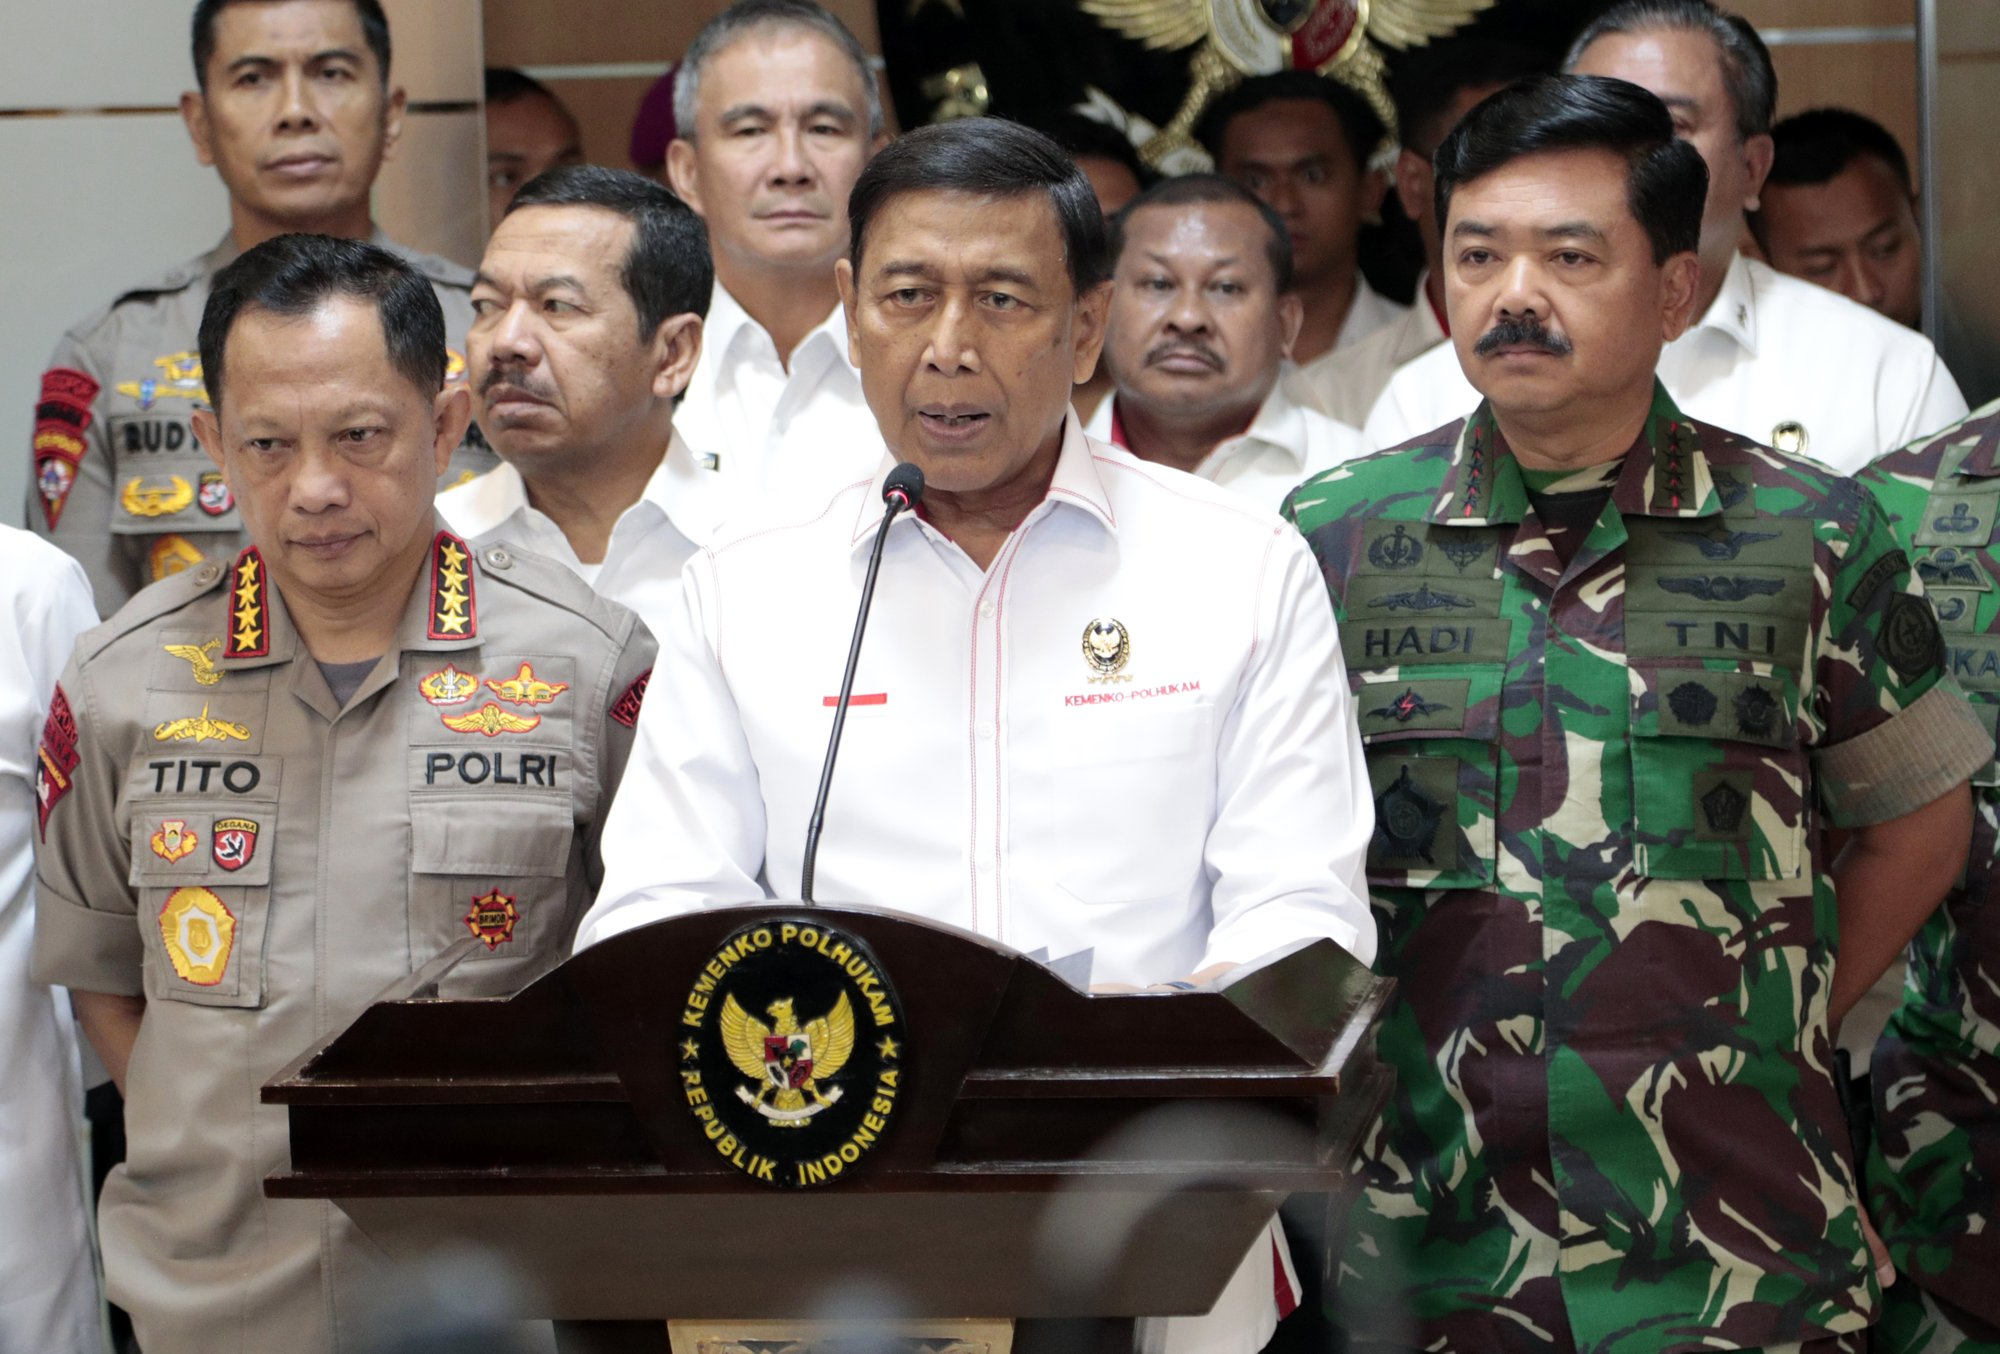 The Latest: Indonesian president says he won re-election